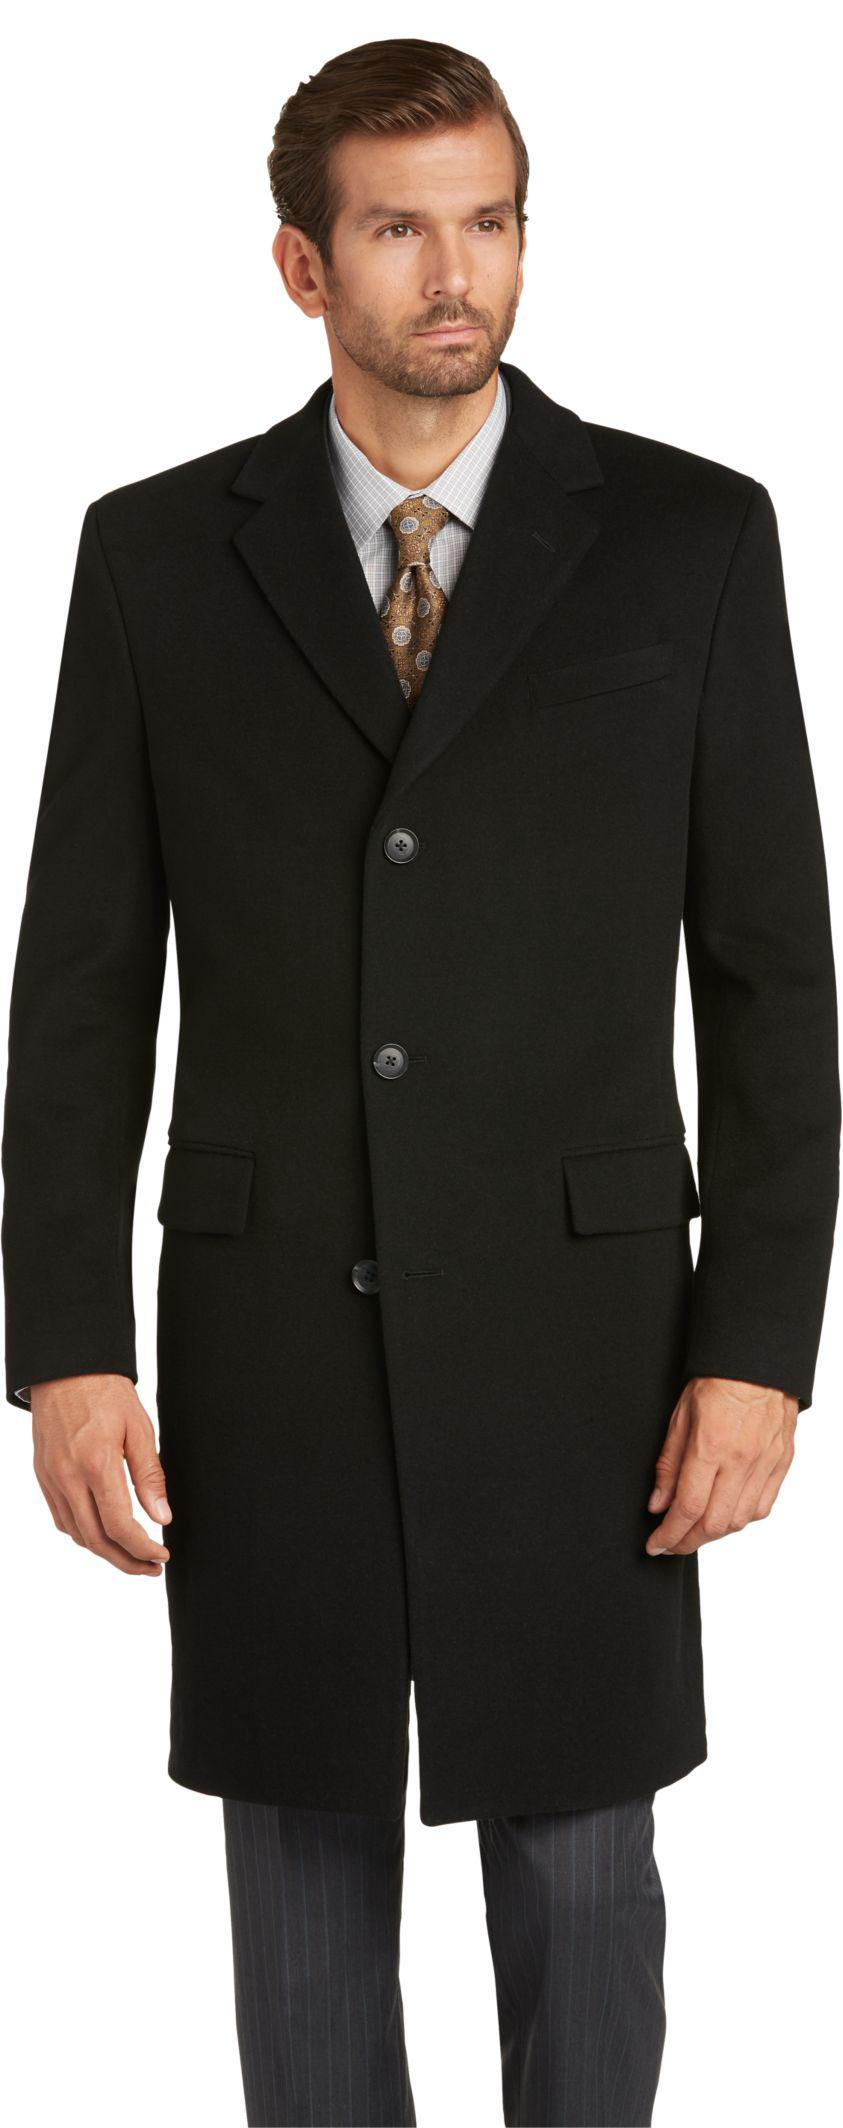 Jos a bank reserve collection slim fit topcoat in black for Jos a bank tailored fit vs slim fit shirts